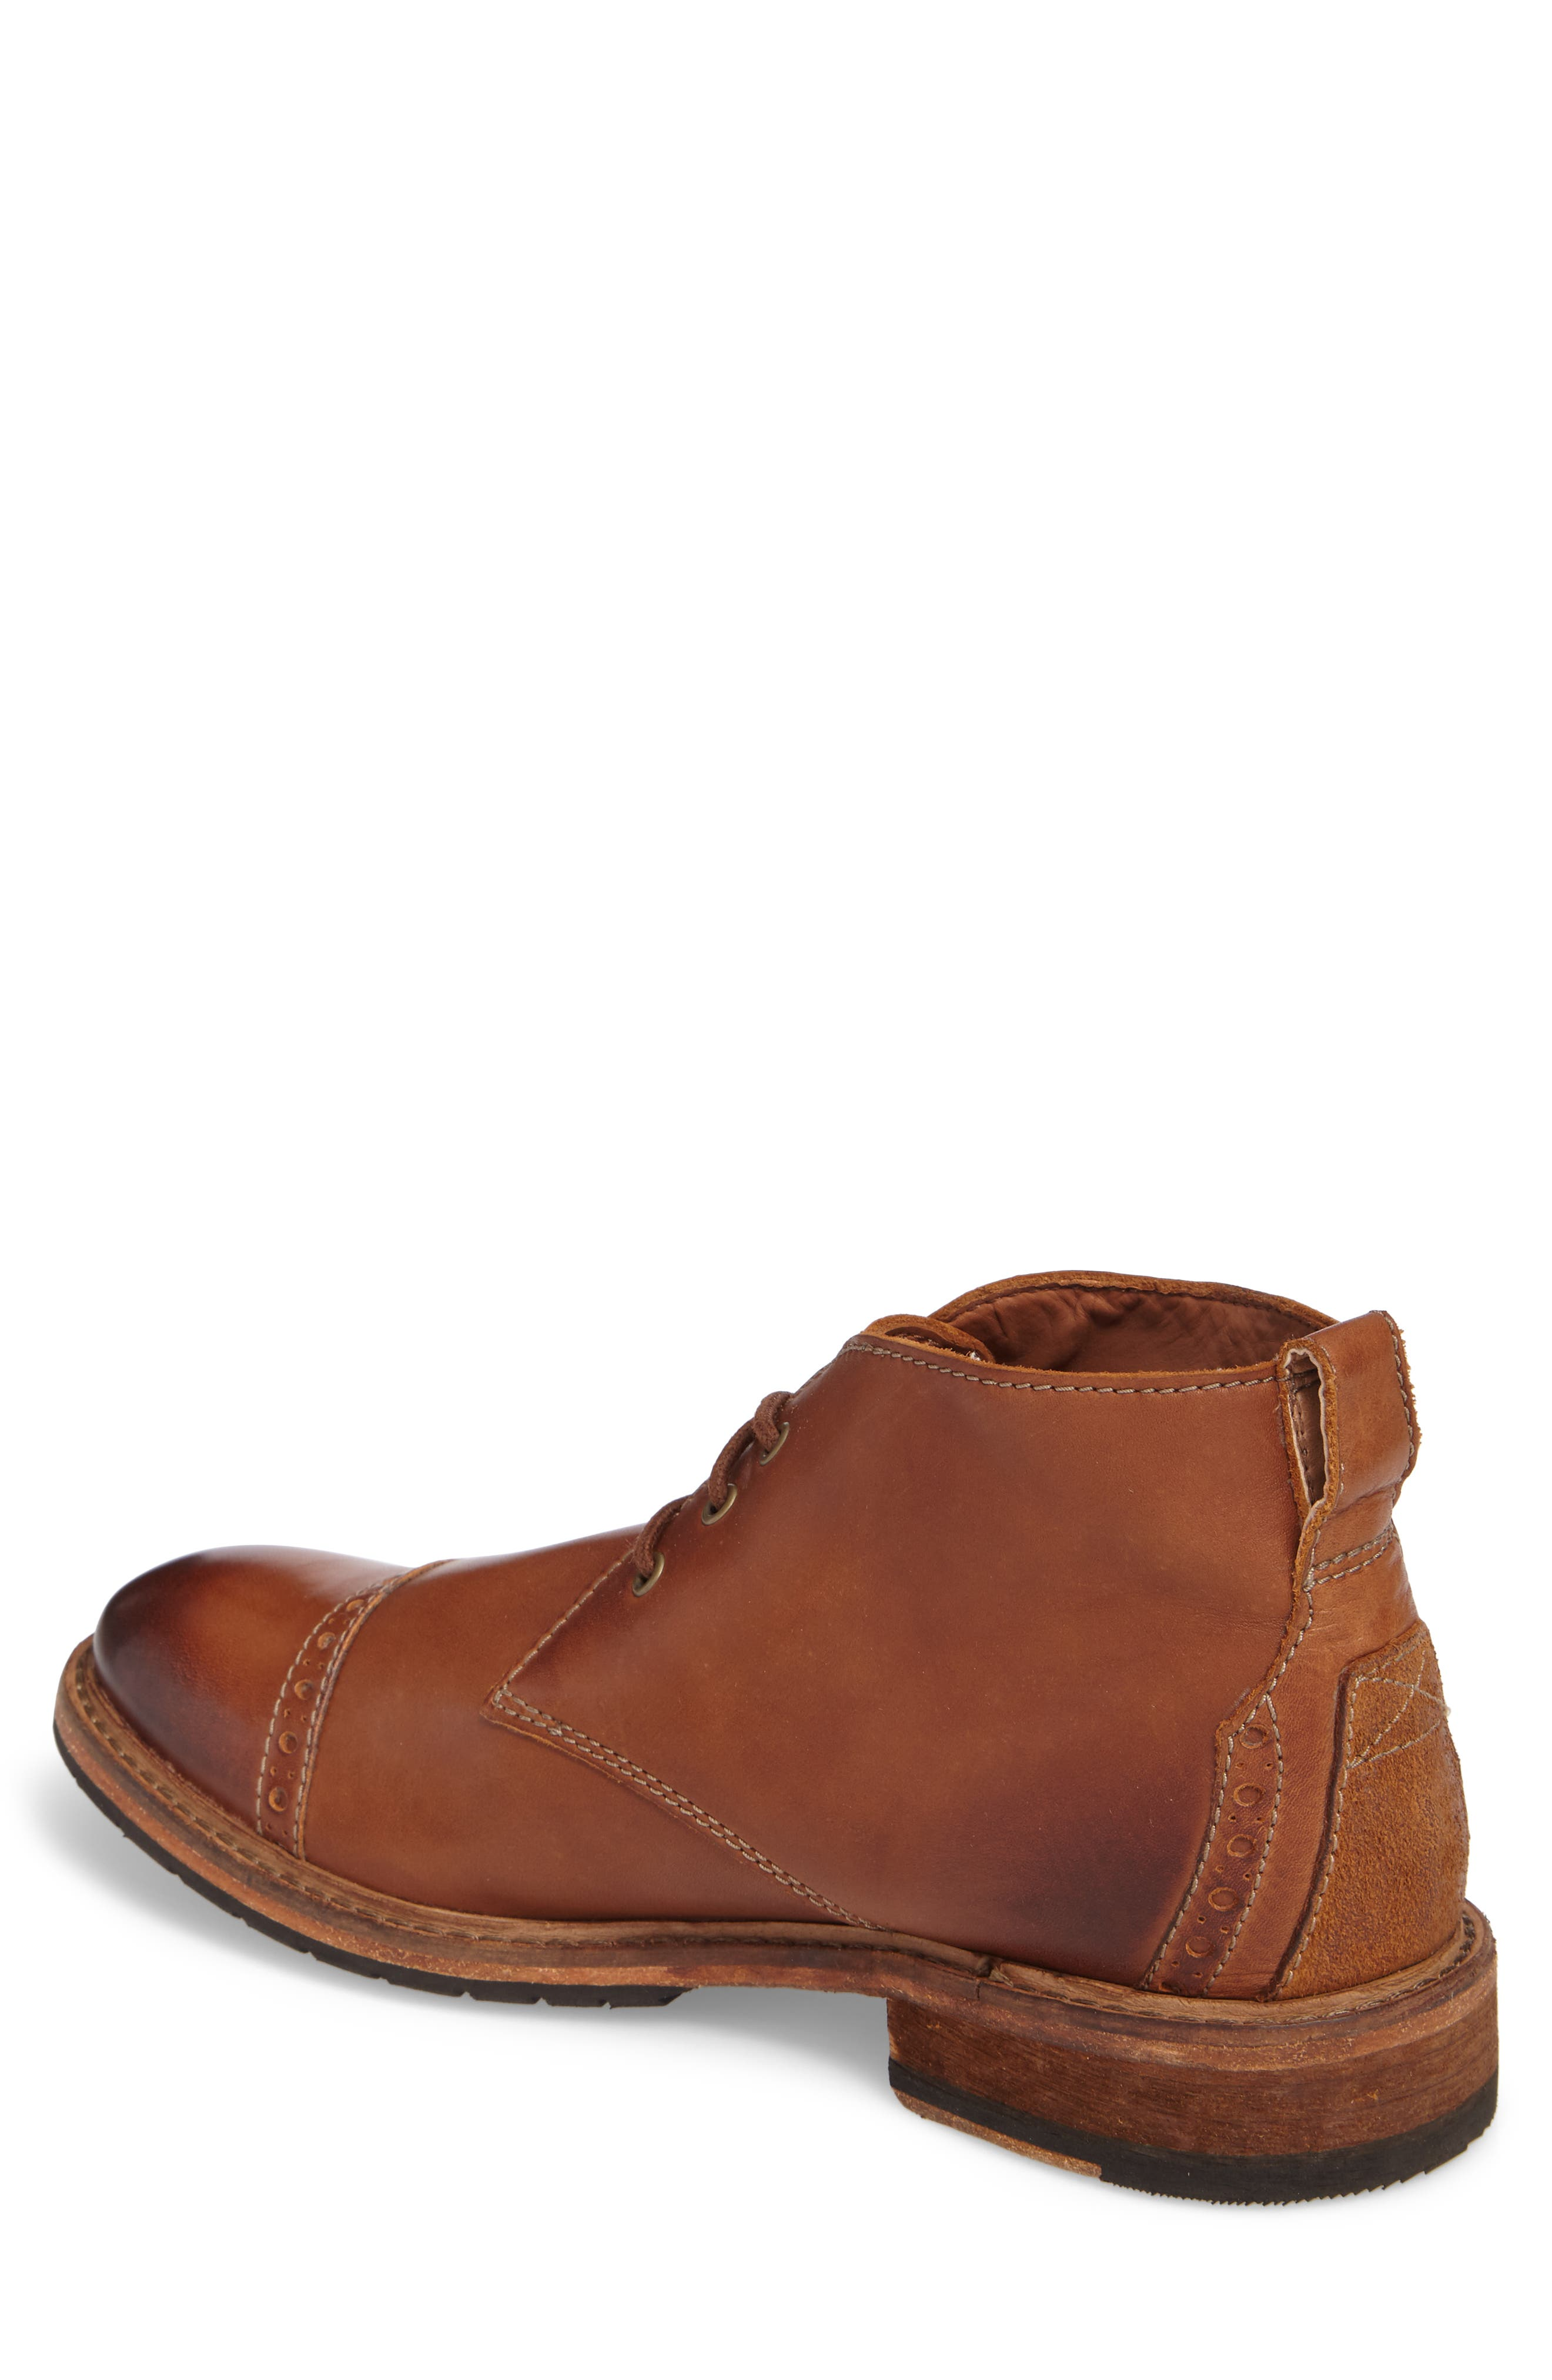 Clarkdale Water Resistant Chukka Boot,                             Alternate thumbnail 4, color,